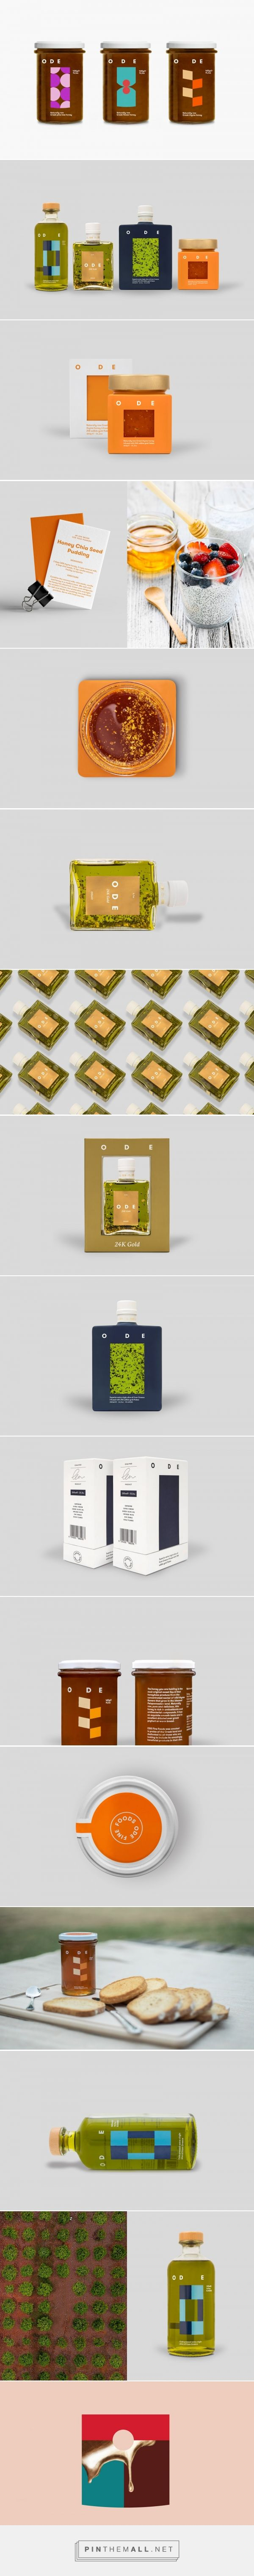 ODE Fine Foods packaging design by AG Design - http://www.packagingoftheworld.com/2018/02/ode-fine-foods.html